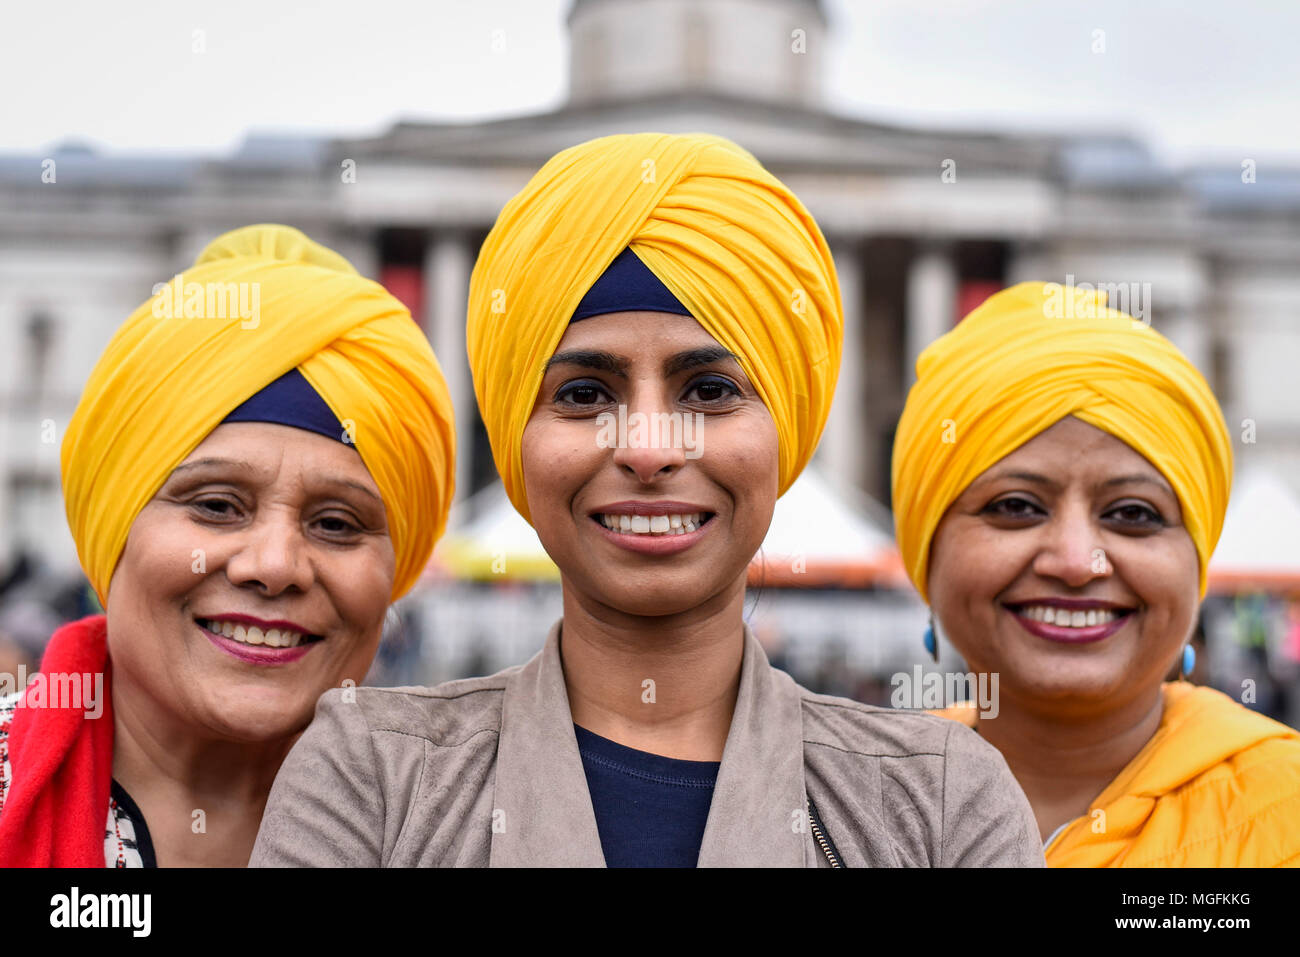 London, UK.  28 April 2018.  (L to R) Sue Khanna, Kanika Sachdeva and Kamaljeet Sandhu pose wearing turbans during the festival of Vaisakhi in Trafalgar Square, hosted by the Mayor of London.  For Sikhs and Punjabis, the festival celebrates the spring harvest and commemorates the founding of the Khalsa community over 300 years ago. Credit: Stephen Chung / Alamy Live News Stock Photo